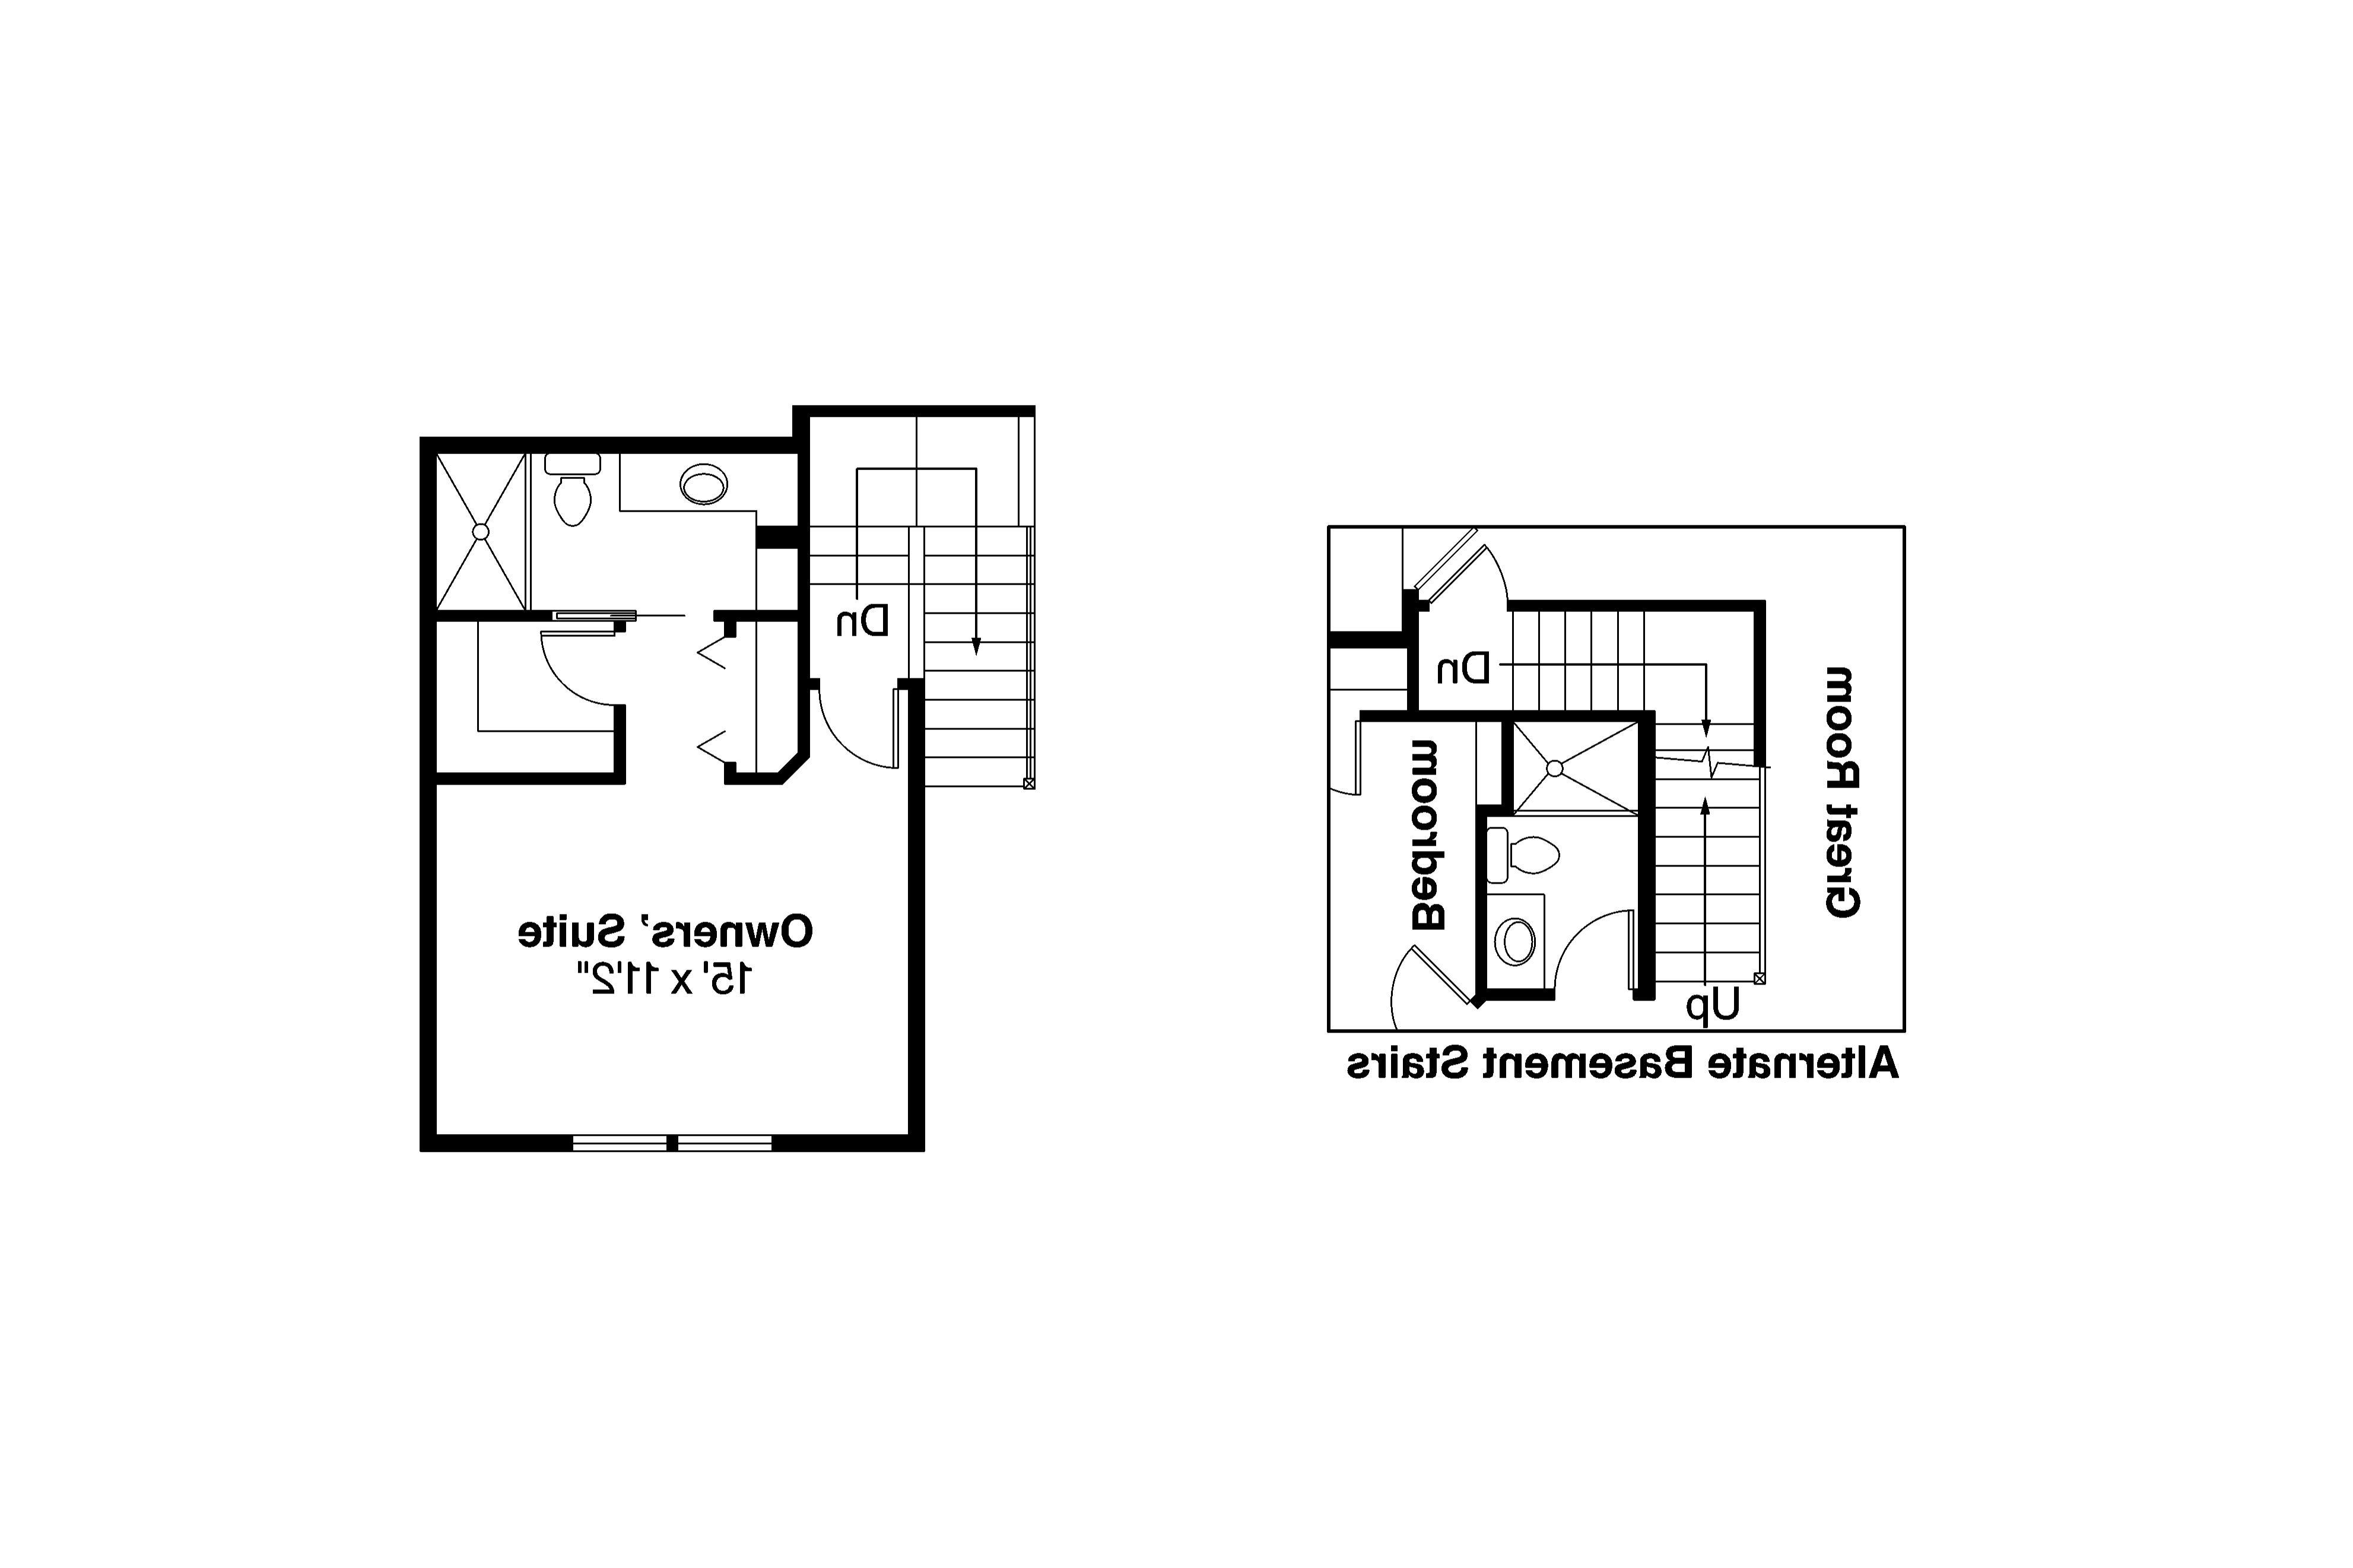 Country house floor plans 28 images 2000 sq ft floor plans plan south louisiana house 2 3 - Country house floor plans ...